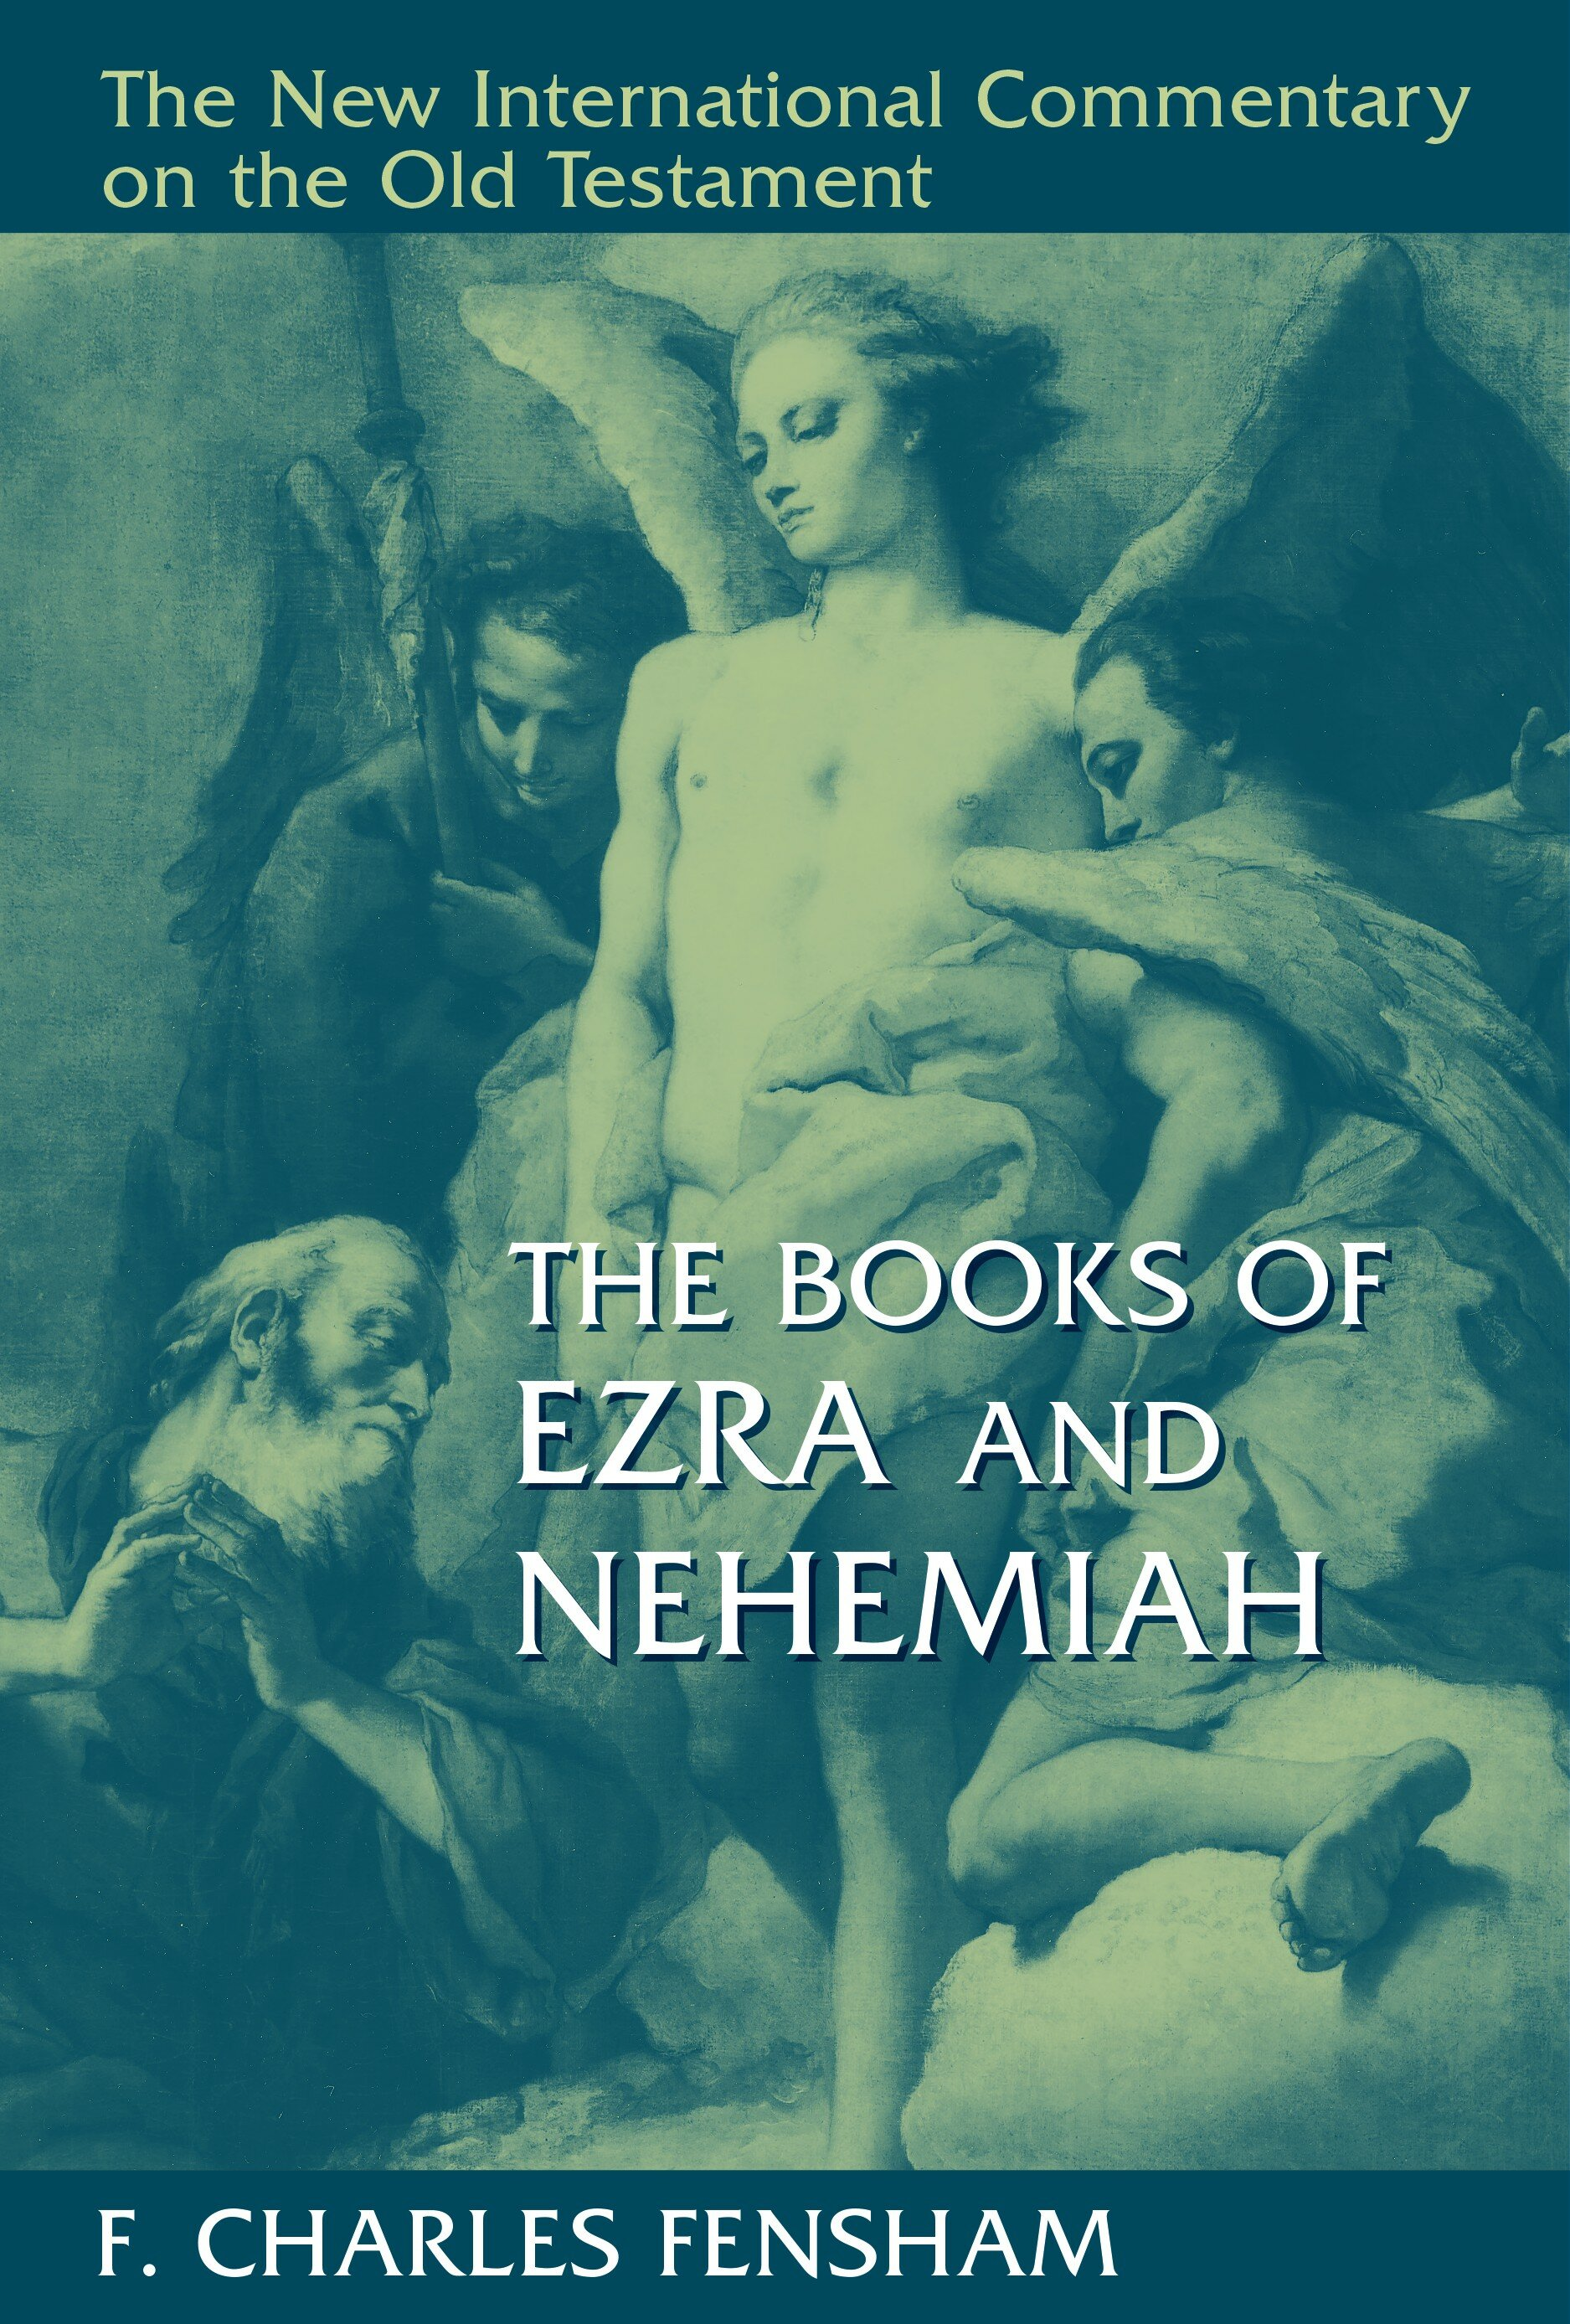 The Books of Ezra and Nehemiah (The New International Commentary on the Old Testament | NICOT)